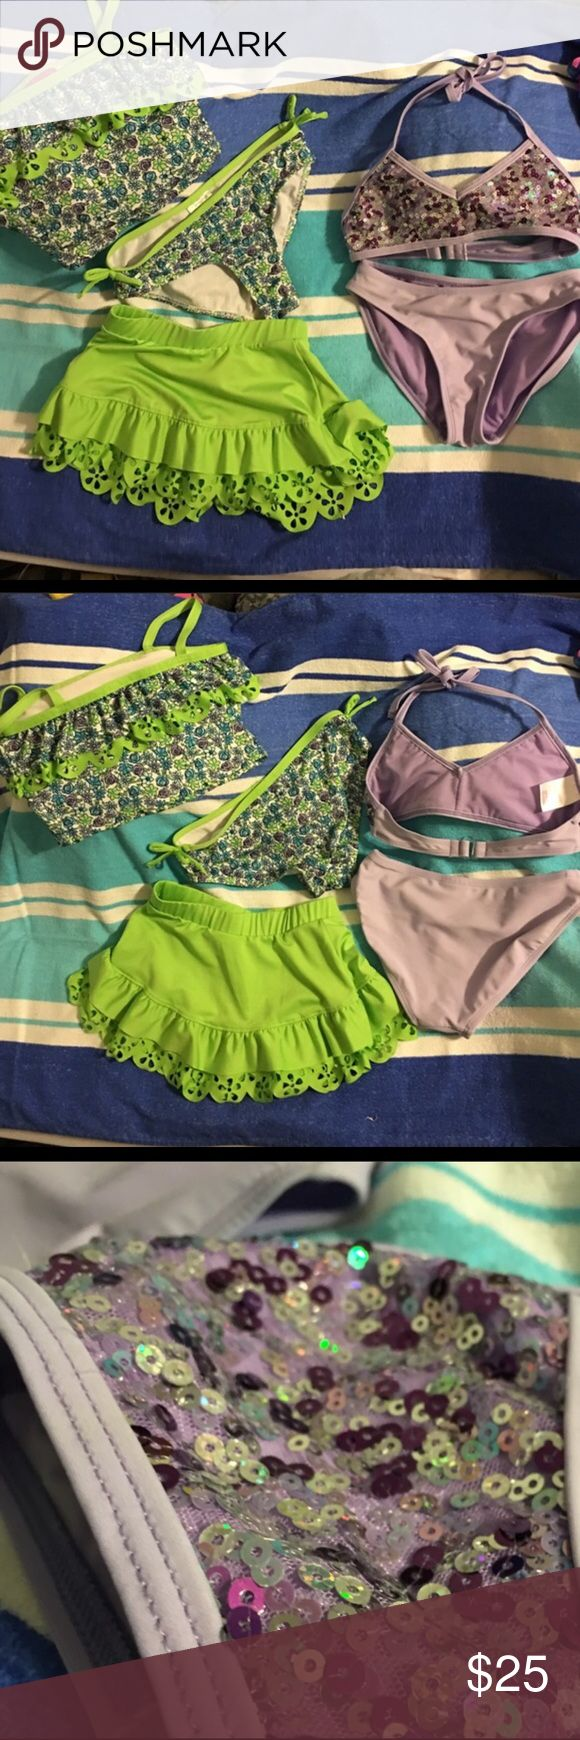 Girls 6/6x swim lot bikini, tankini, skirt cover Suit #1 lavender Xhilaration bikini with purple and silver sequins. Ties behind neck, plastic hook in back. Includes matching bottom. In great preowned condition. #2 pull on style tankini in white, lime, blue, and lavender flower design with spaghetti straps by Penny M. Matching bottom with decorative bows on sides and lime green skirt coverup with flower cut outs on ruffles. Some cutouts on the top are torn. It is not noticeable and mostly…